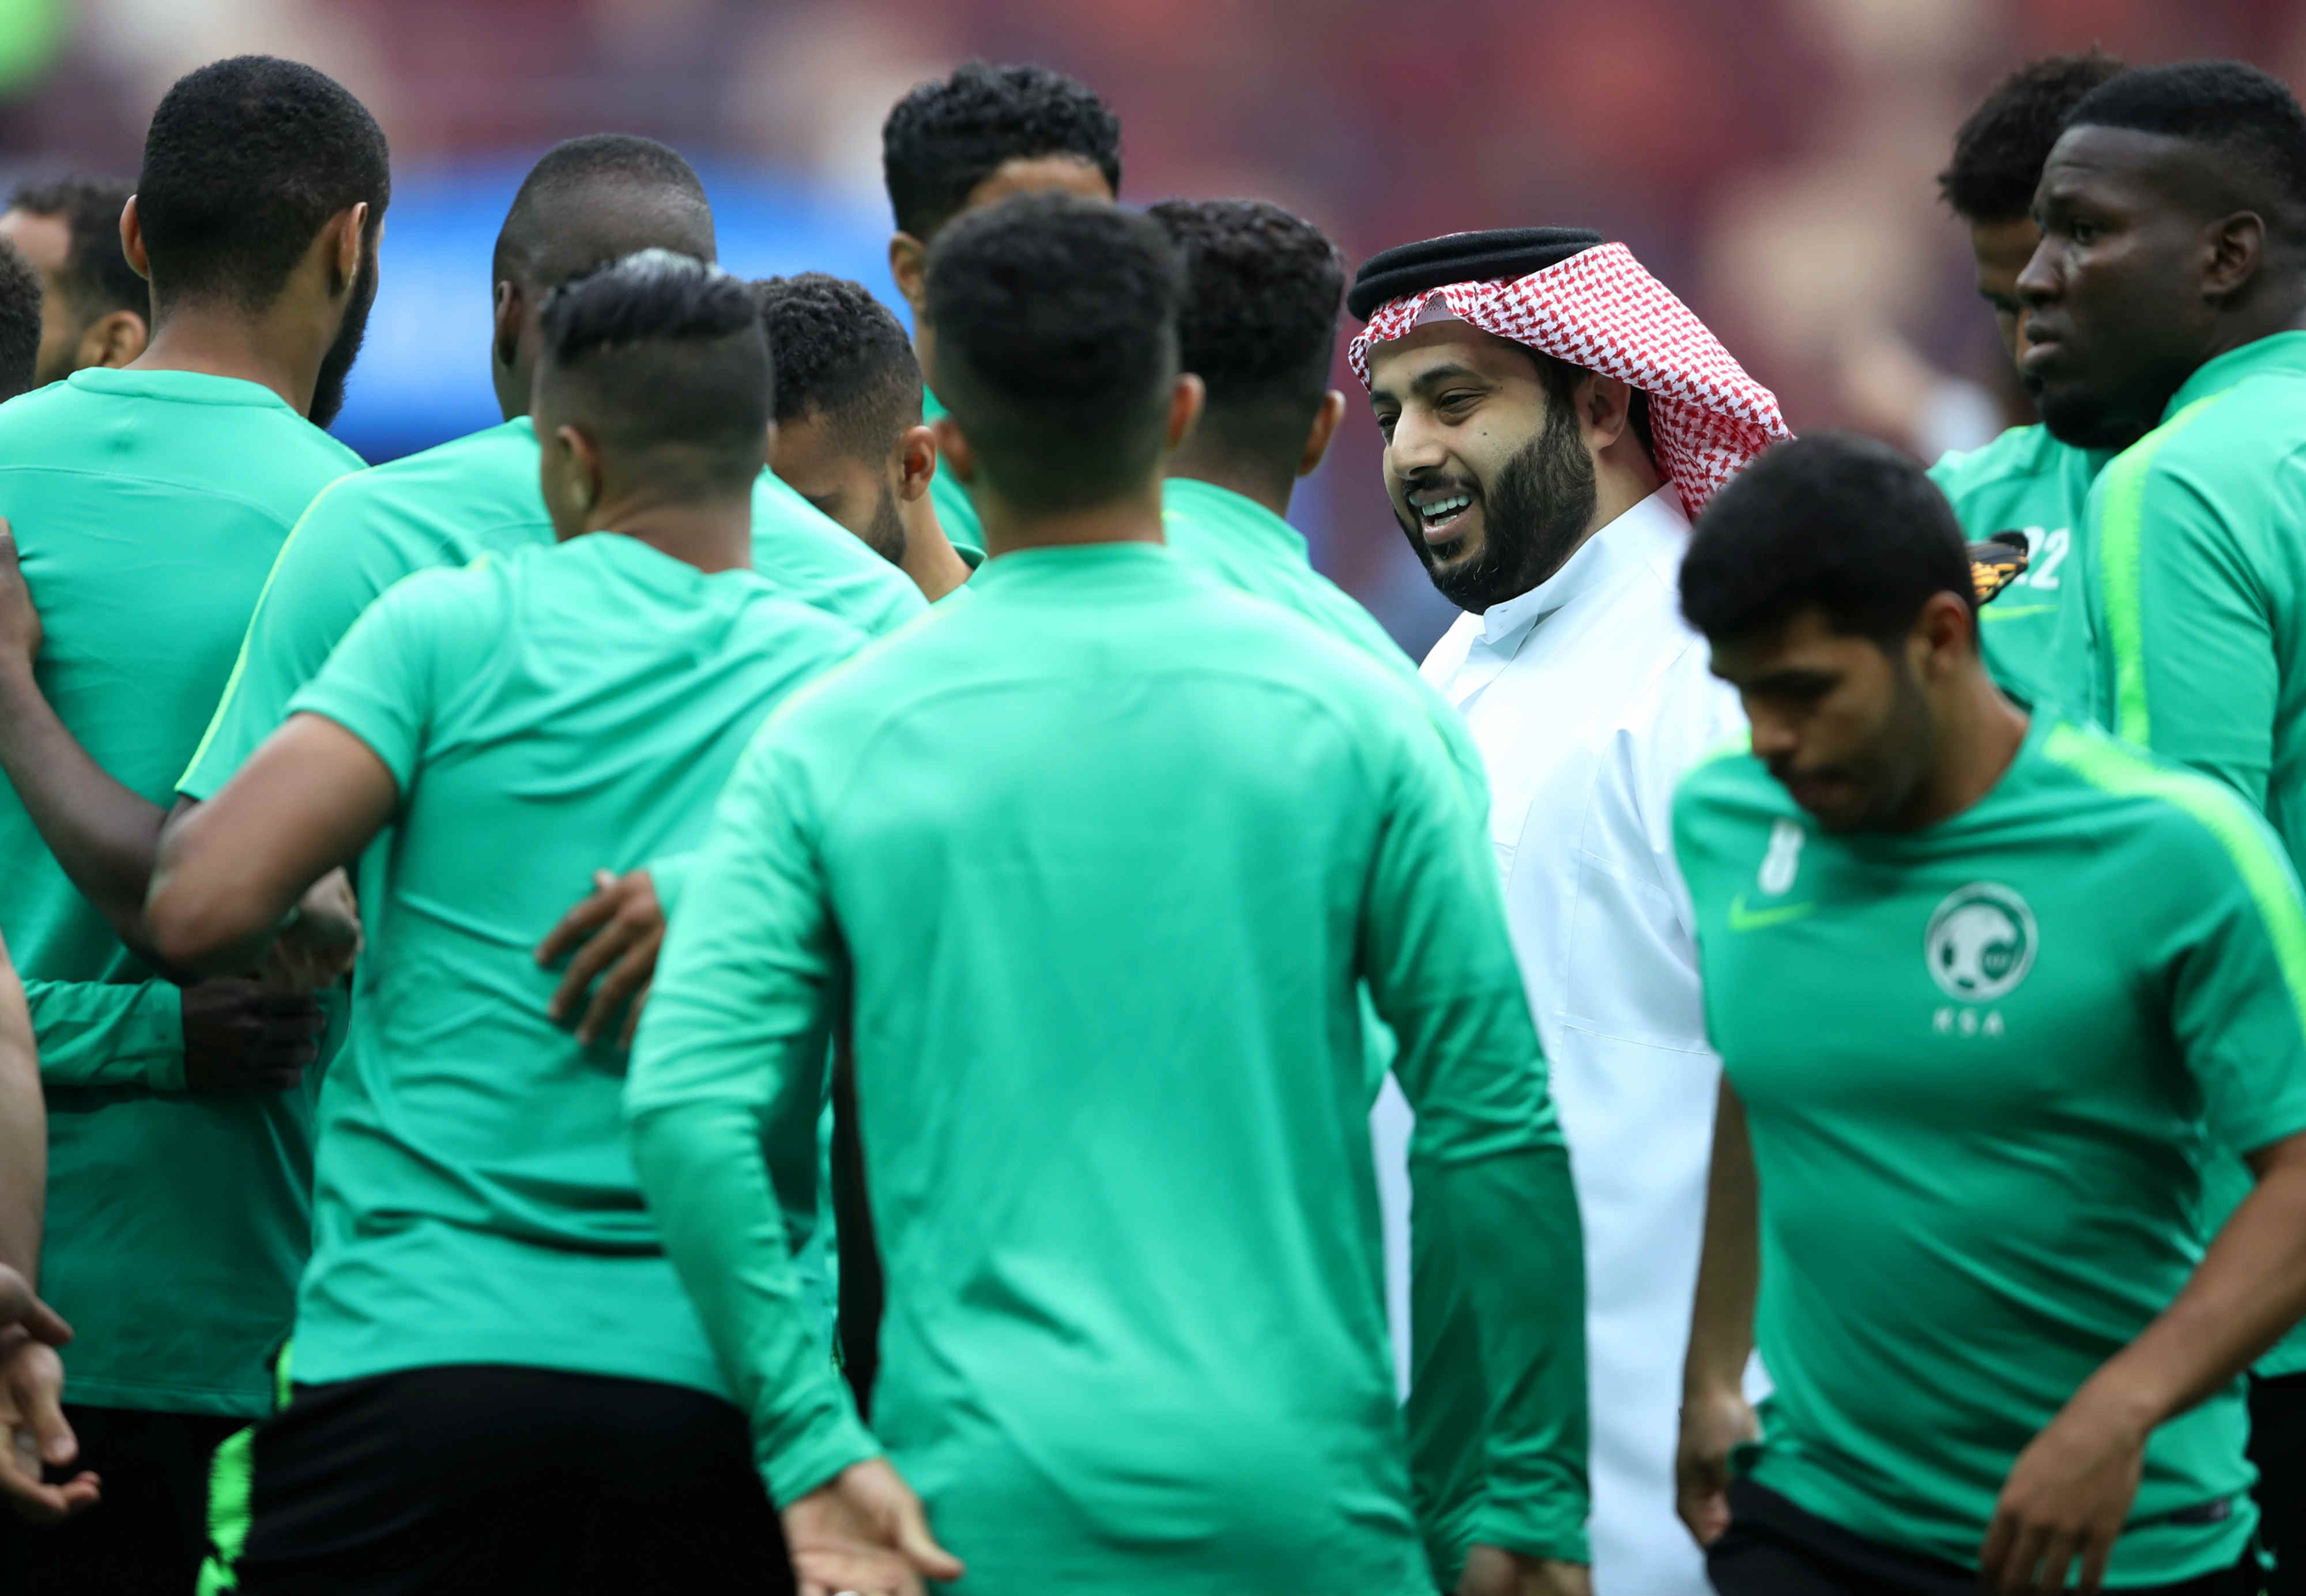 Saudi sports chief lets rip at UEFA football officials on Twitter